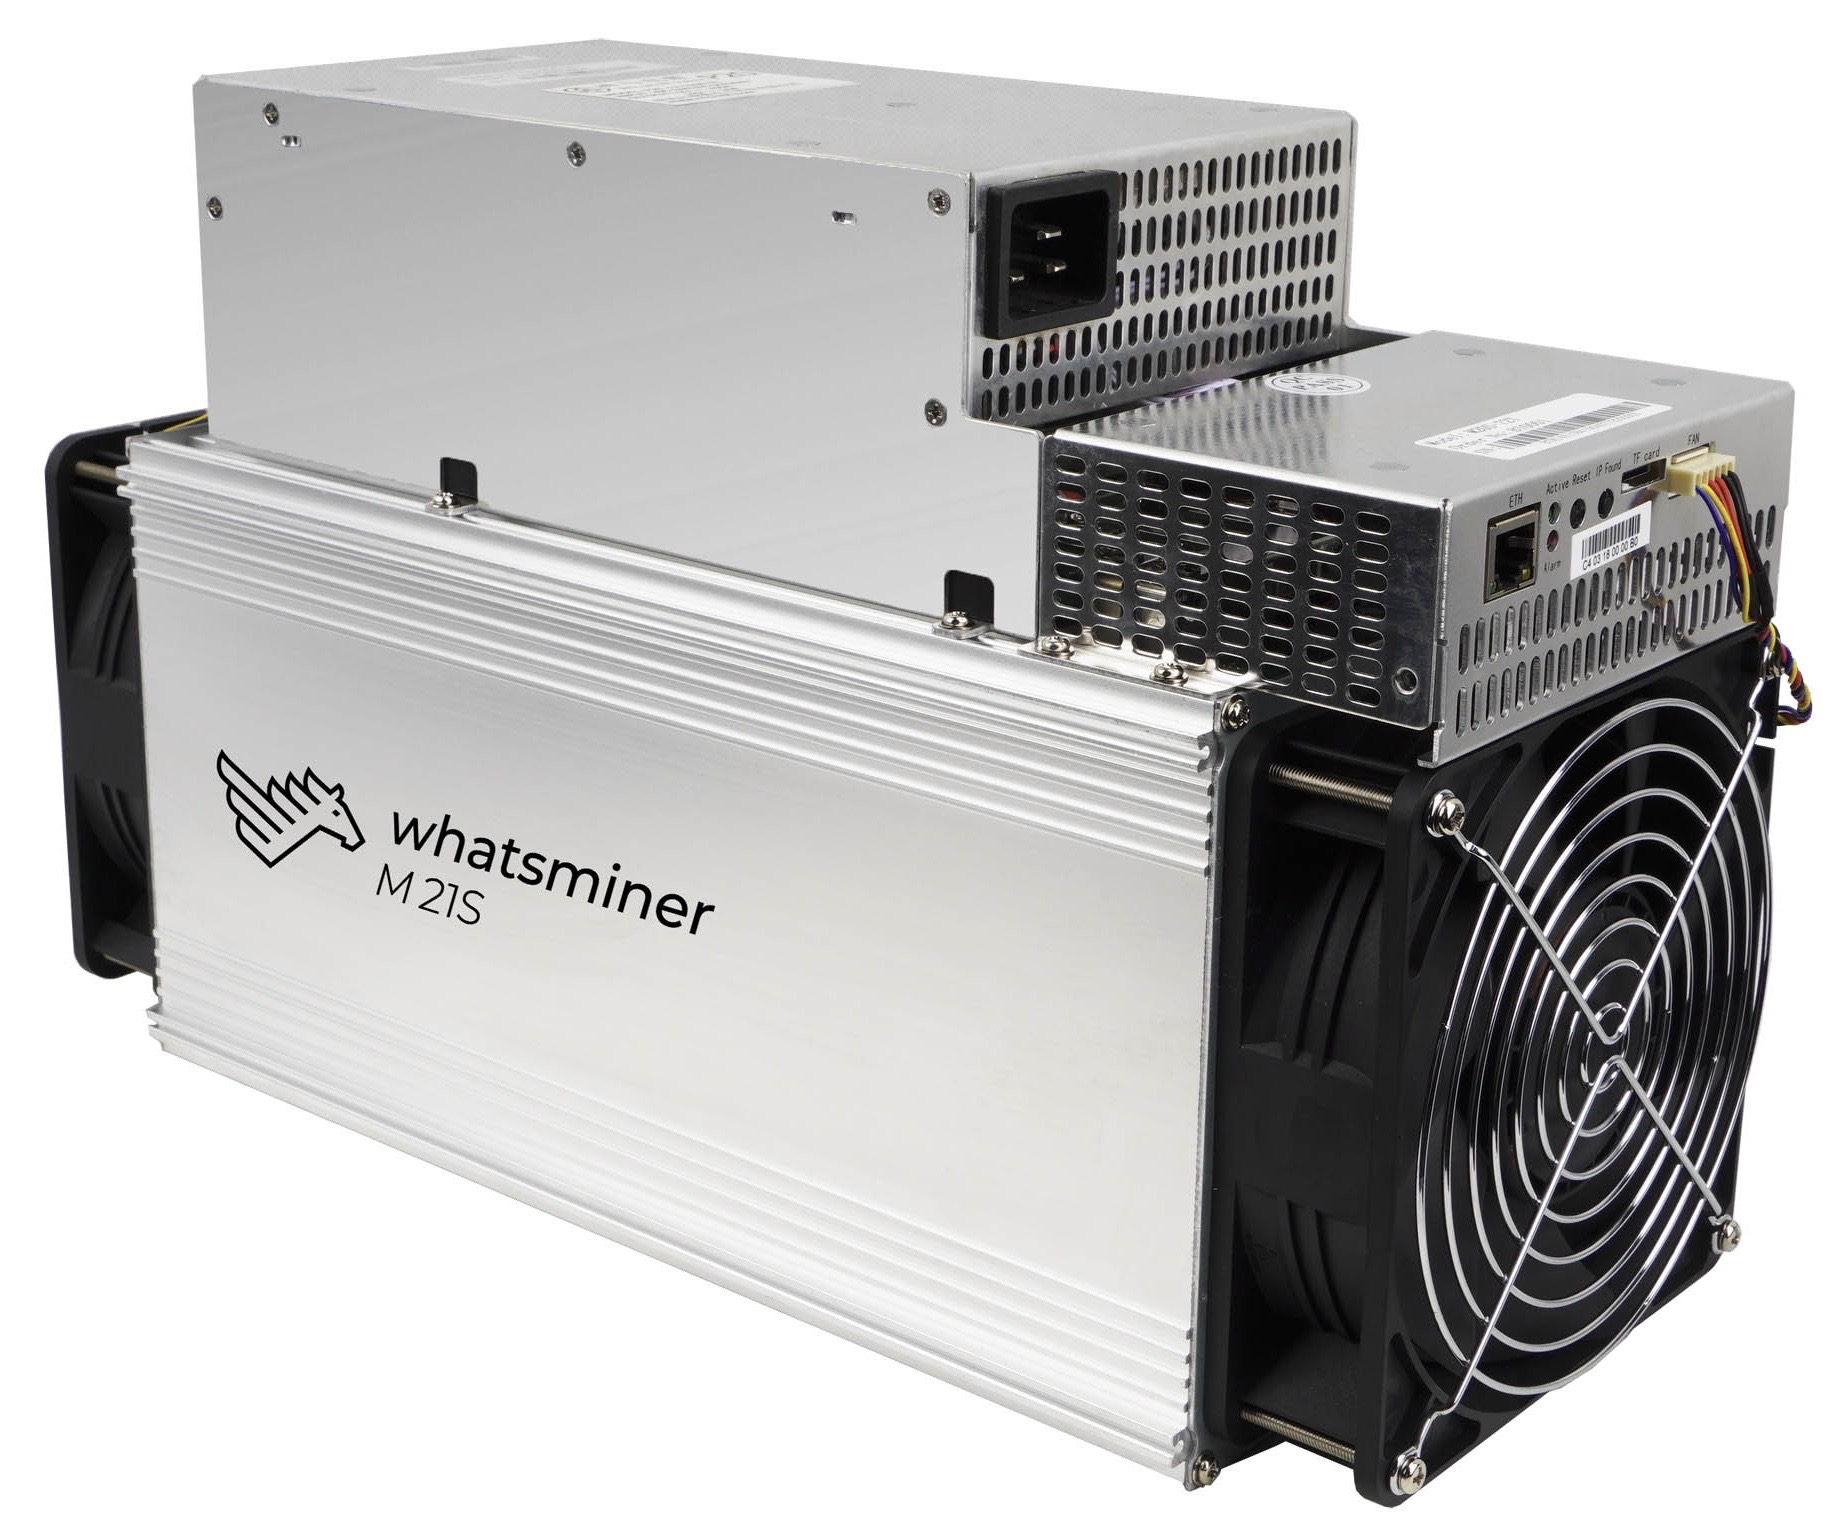 ASIC Whatsminer M21S 56 Th/s